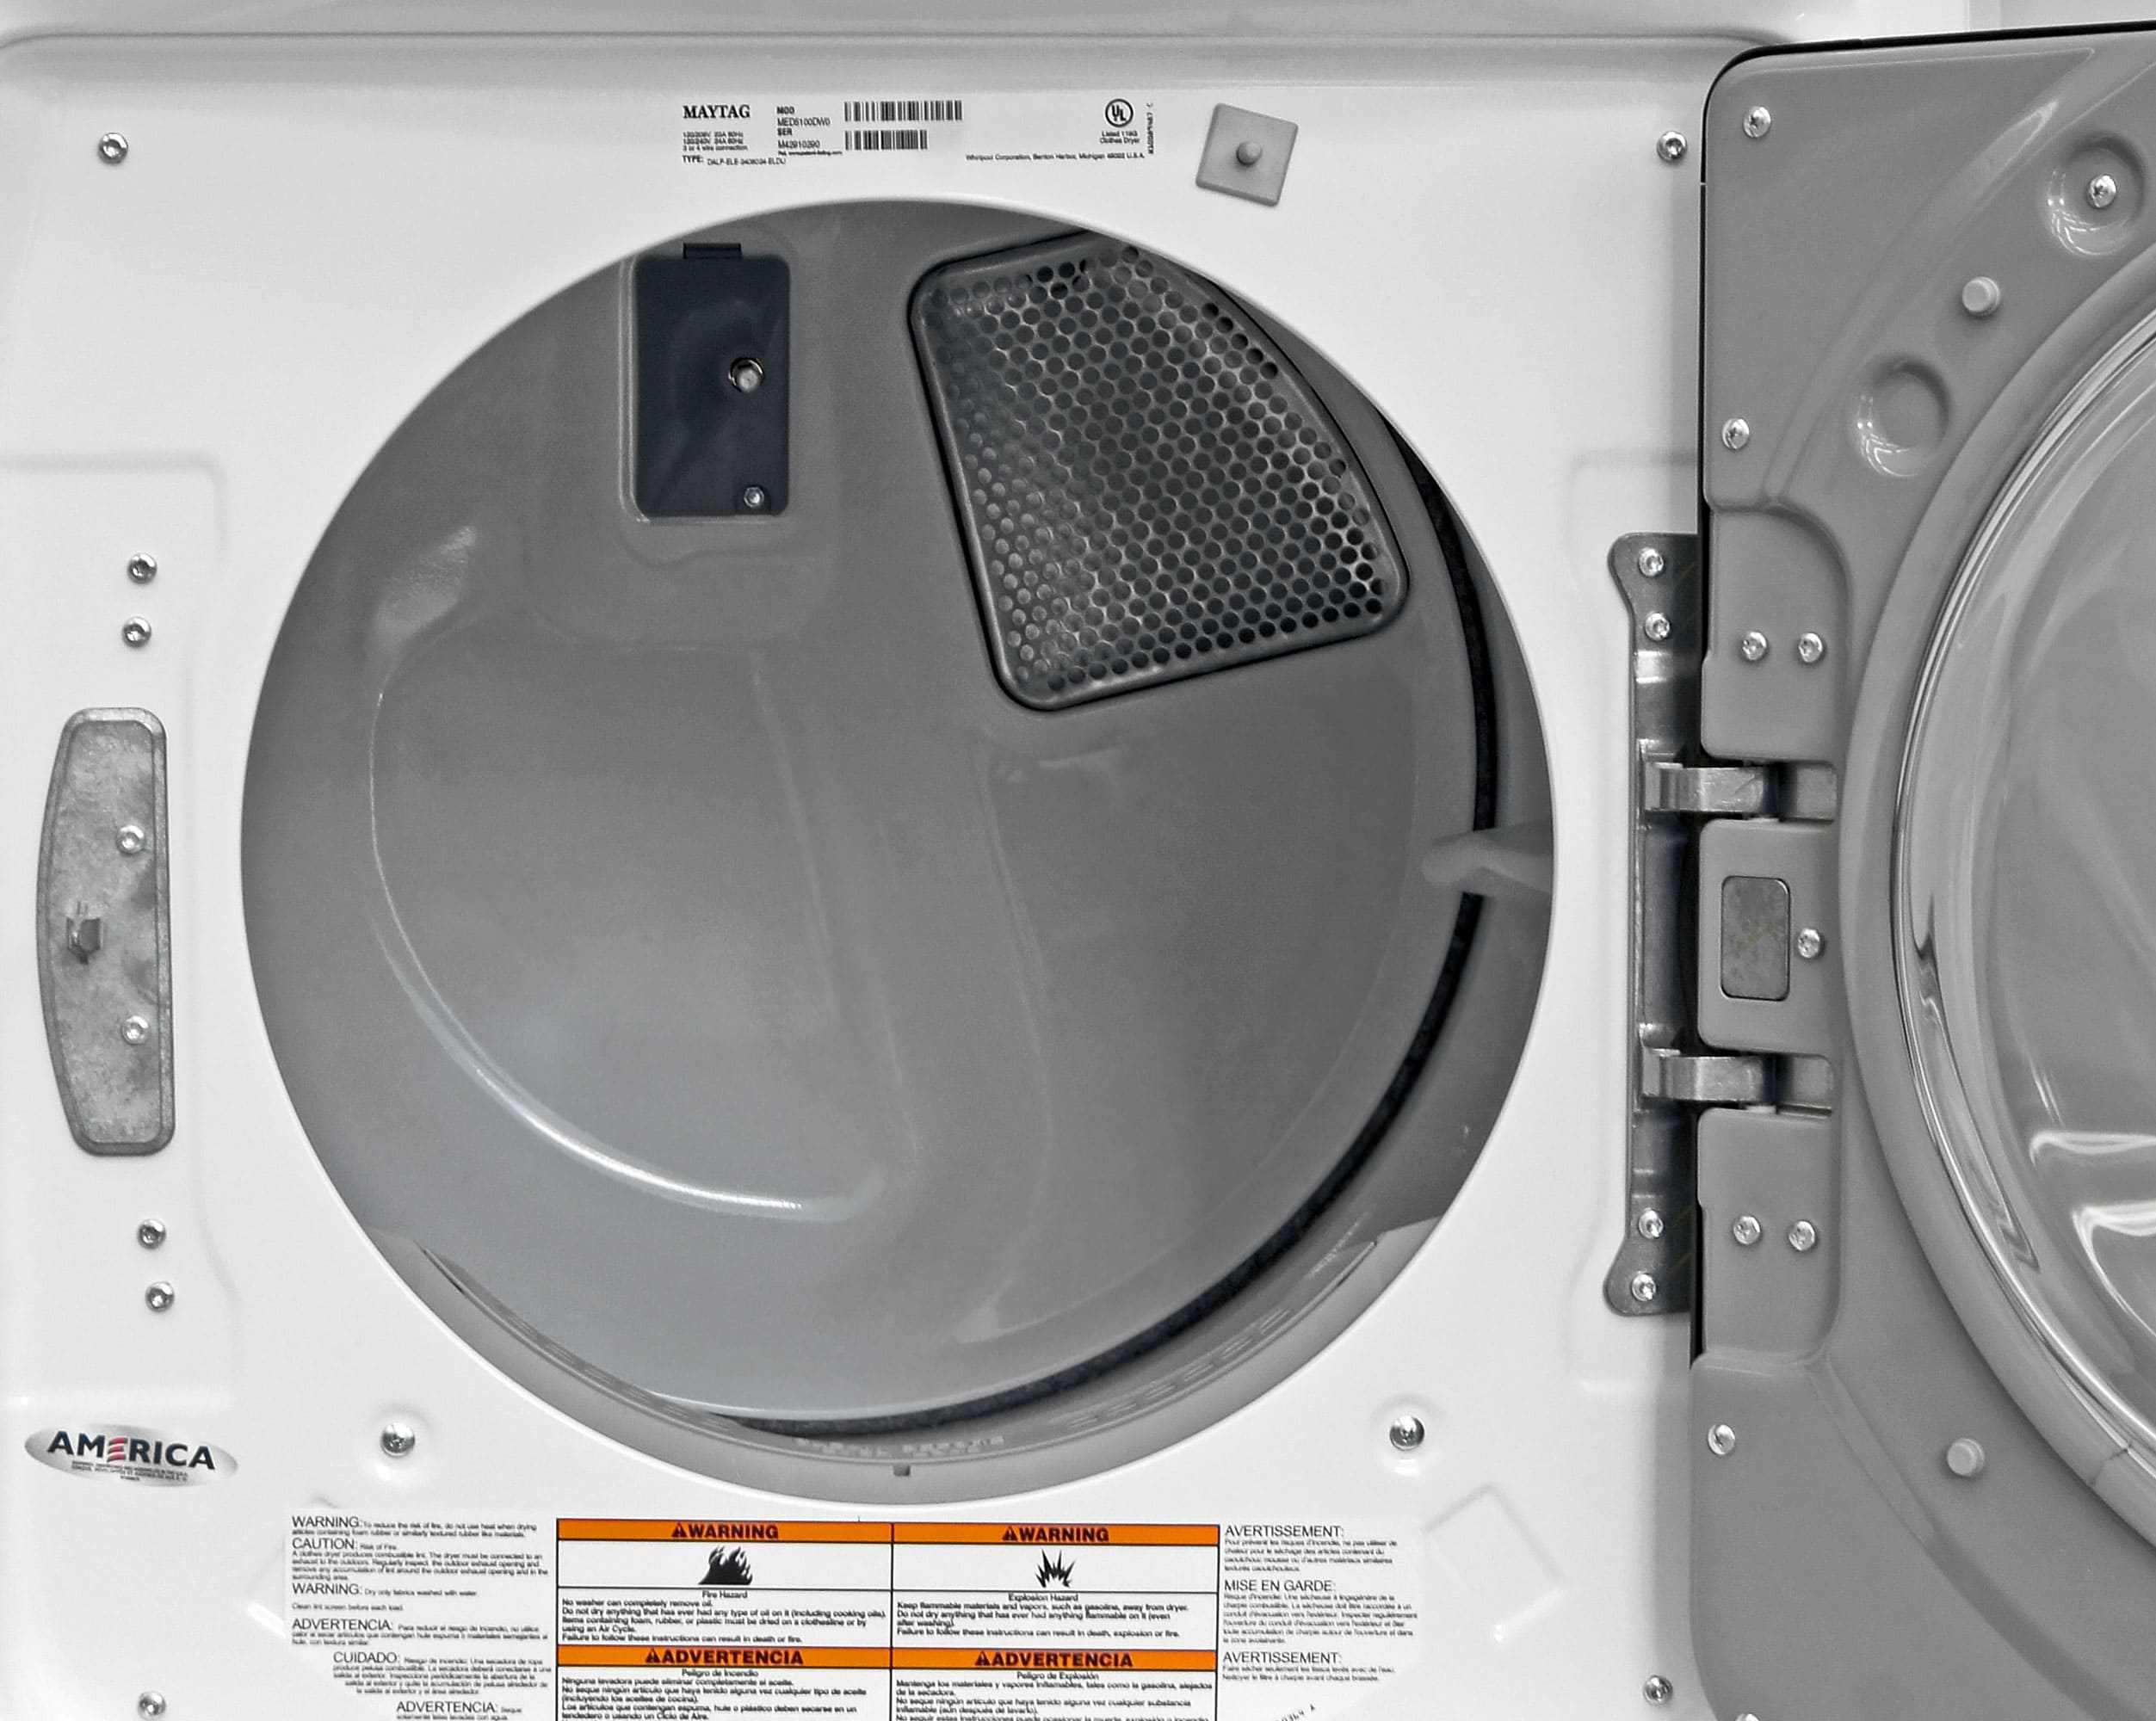 White plastic dryer drums—like the one found in the Maytag Maxima MED5100DW—are typically less sound proof and more prone to rusting or flaking compared to stainless ones.